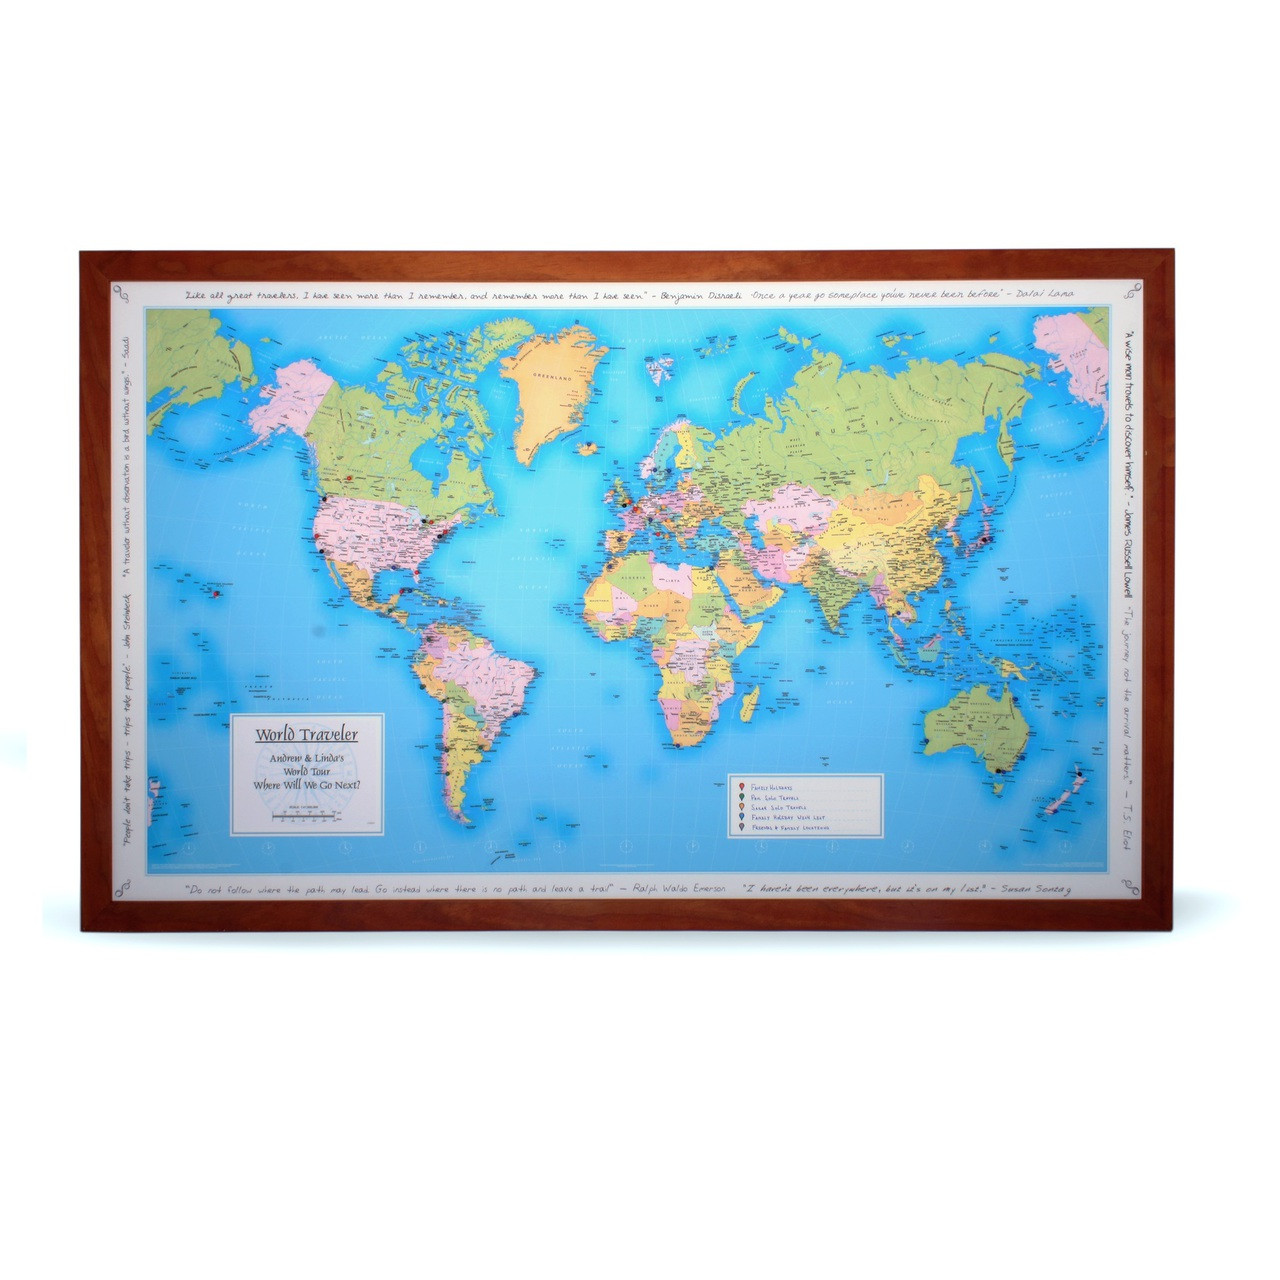 Personalized World Travel Map on national geographic personalized map, persona map, usa map, personalized world globe, personalized map u.s. travelers, yoga mind map, personalized travel map, personalized map jigsaw puzzle, personalized wall map, road map, places i have been map, personalized map gifts,